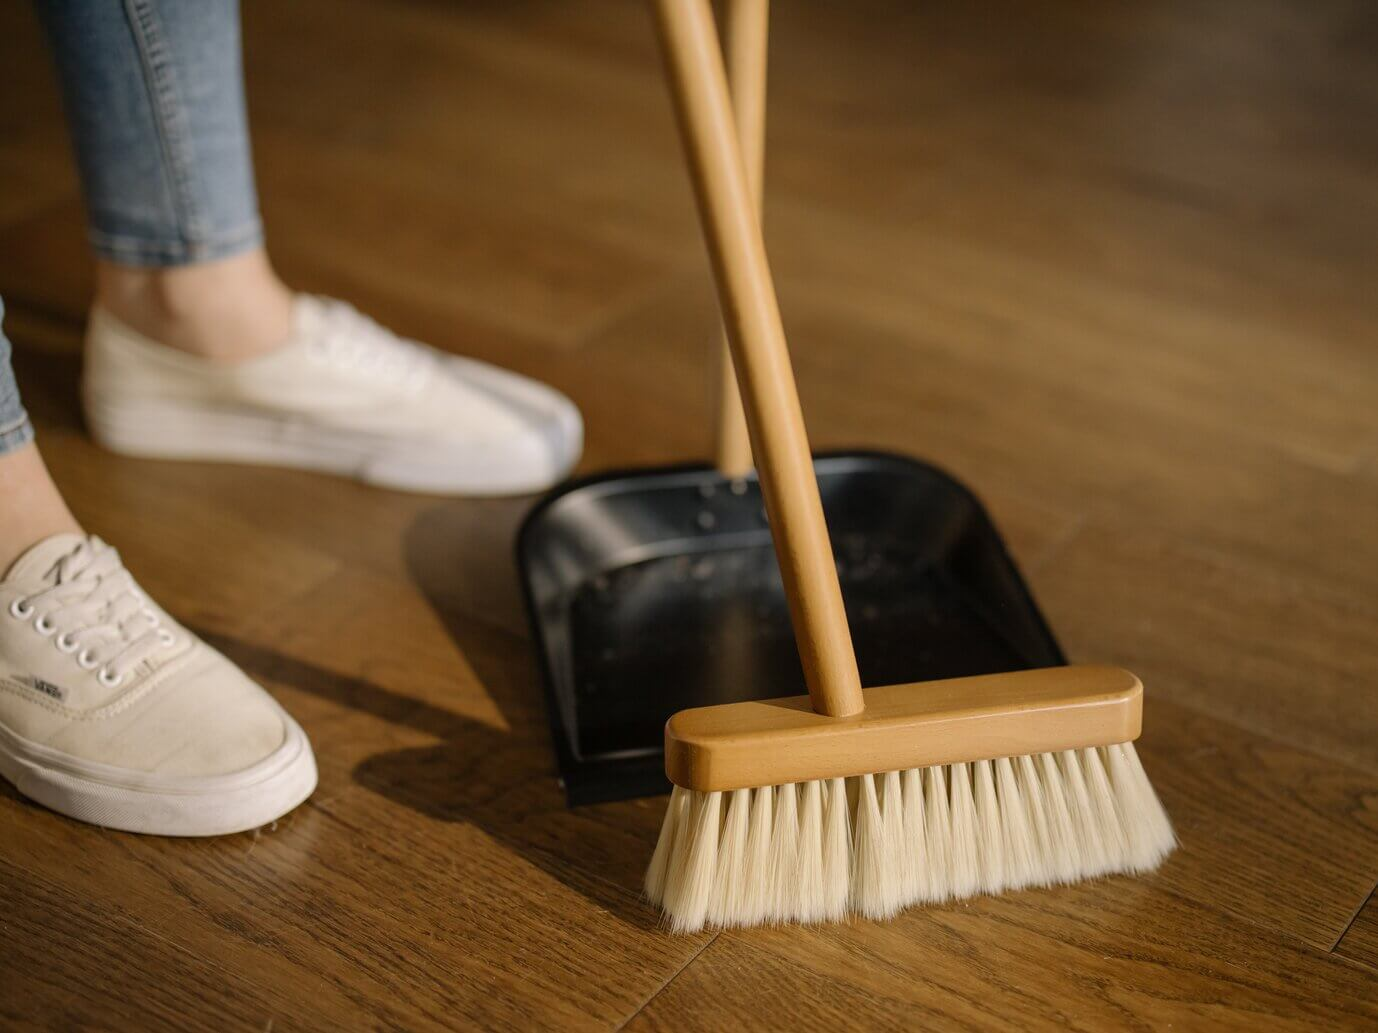 Our TOP SECRET Tips To Help You Clean Your Apartment Efficiently